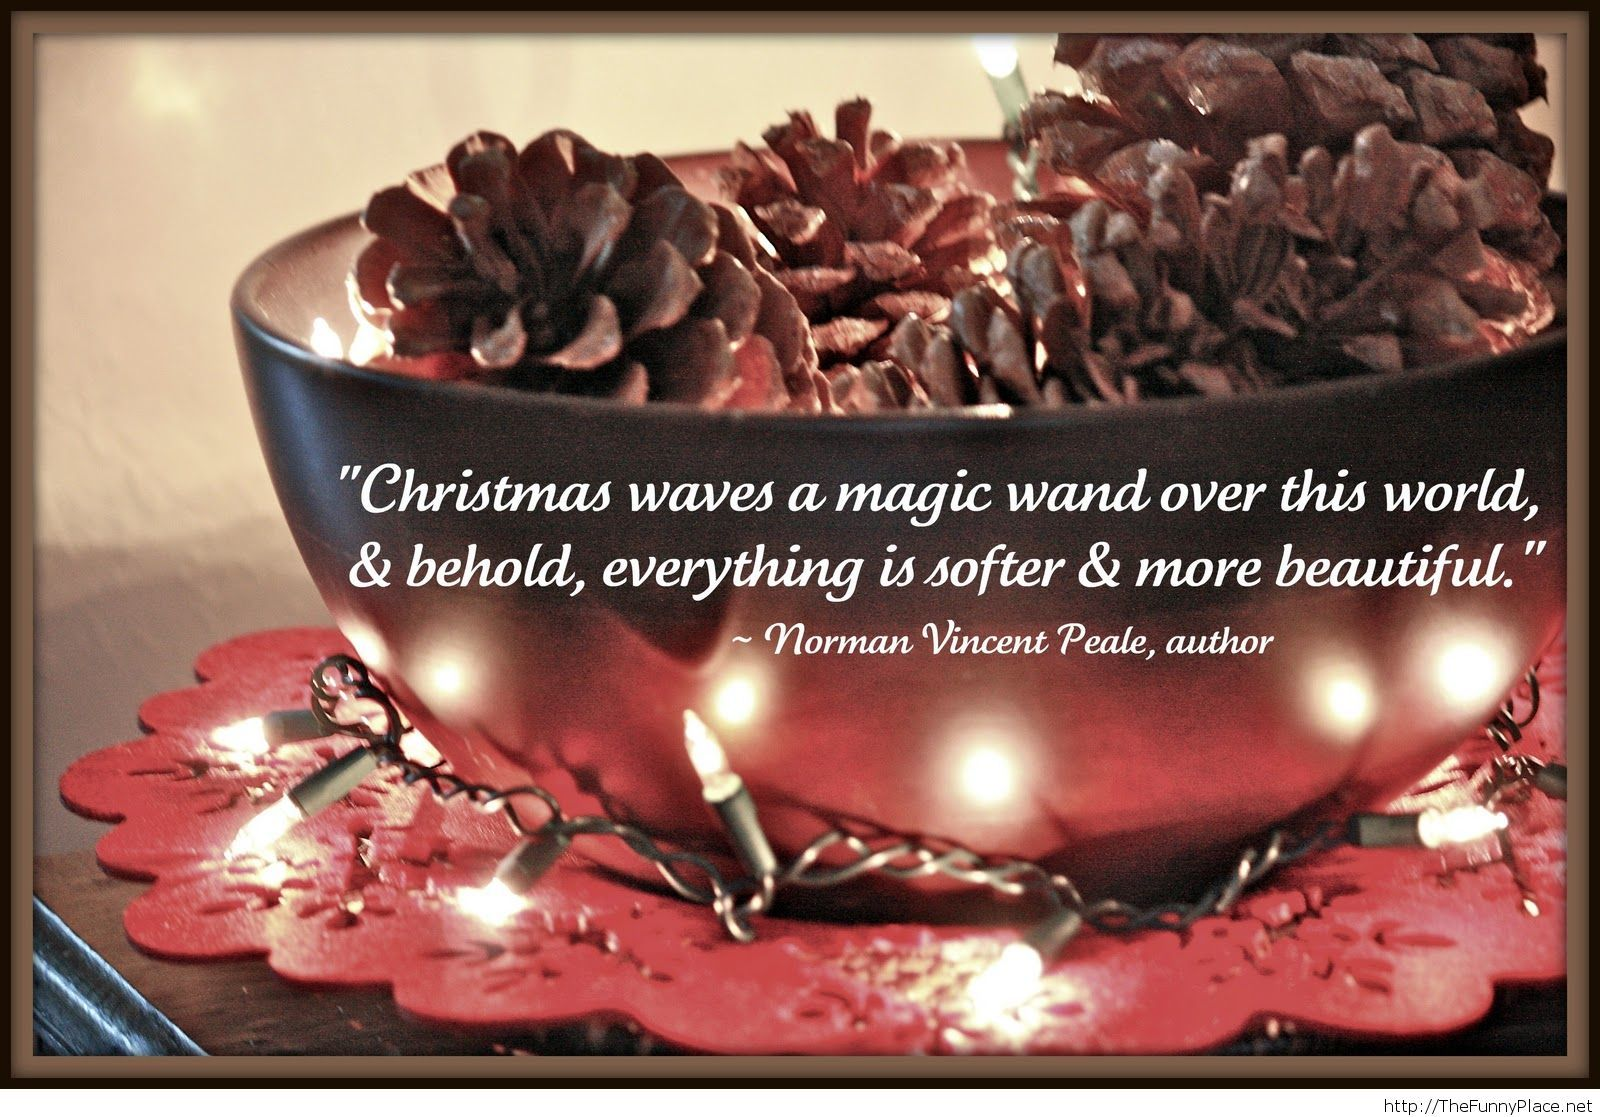 Funny christmas quote with image